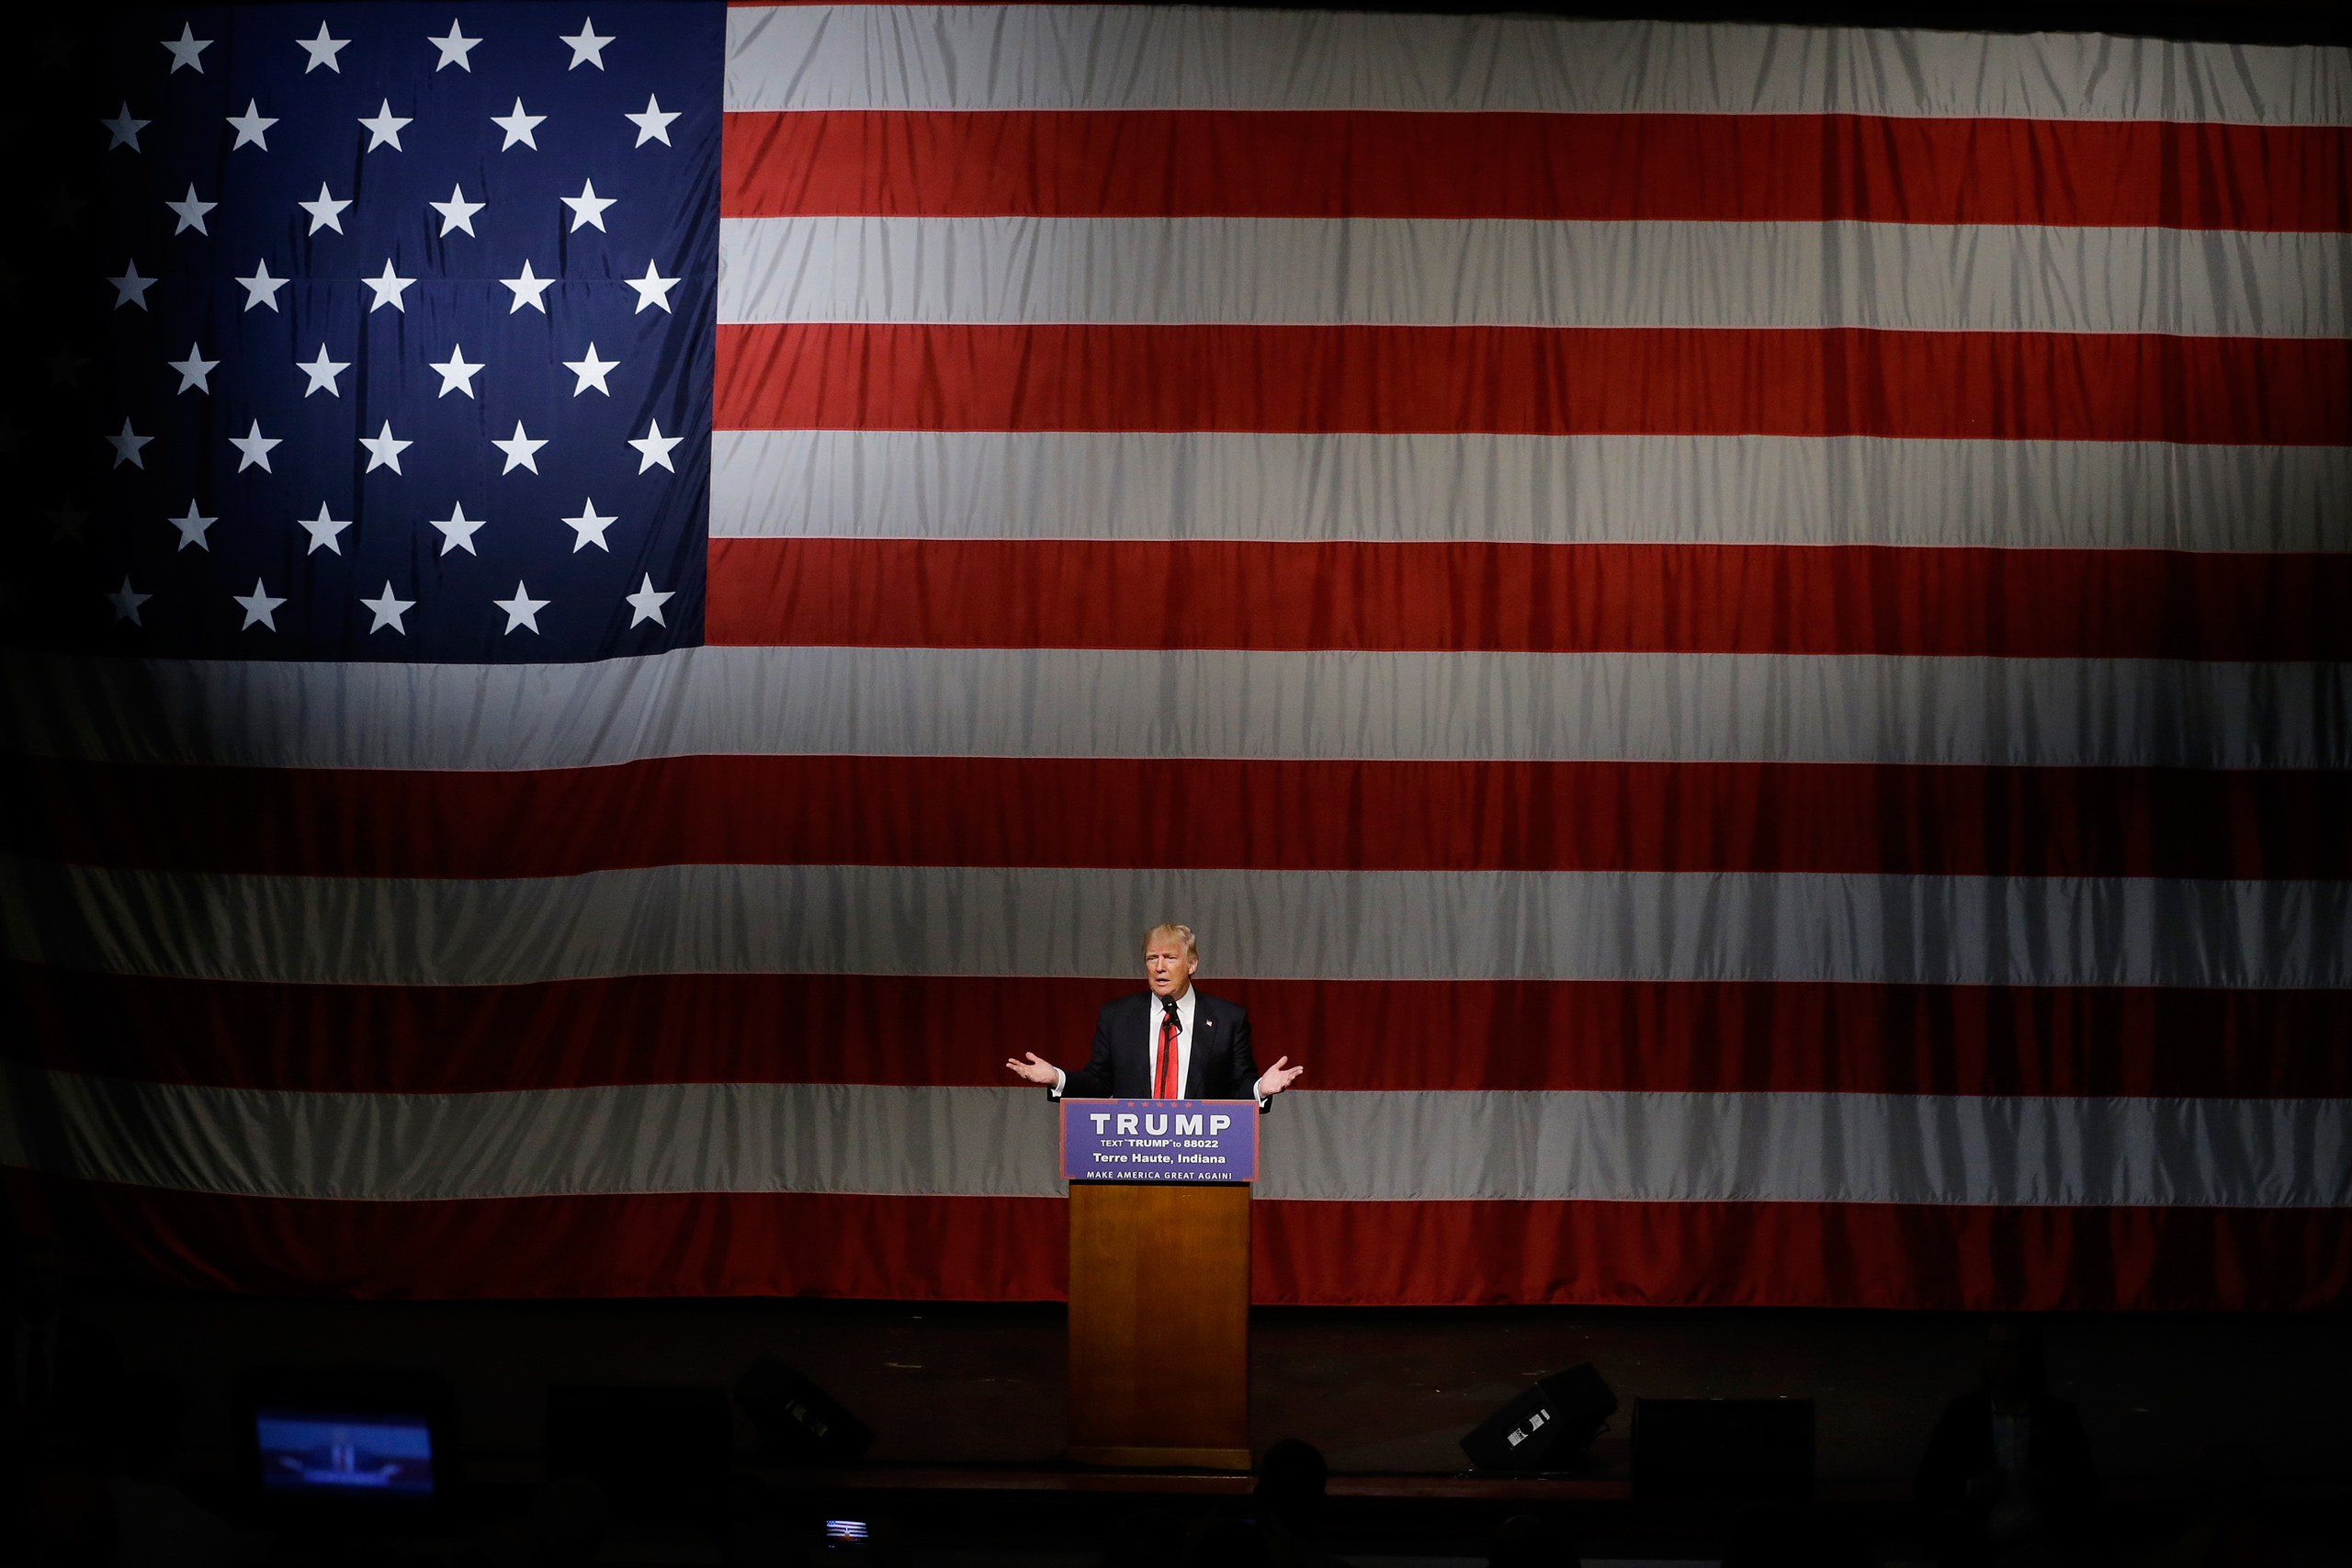 Republican presidential candidate Donald Trump speaks during a campaign rally at the Indiana Theater in Terre Haute, Ind., on May 1, 2016.